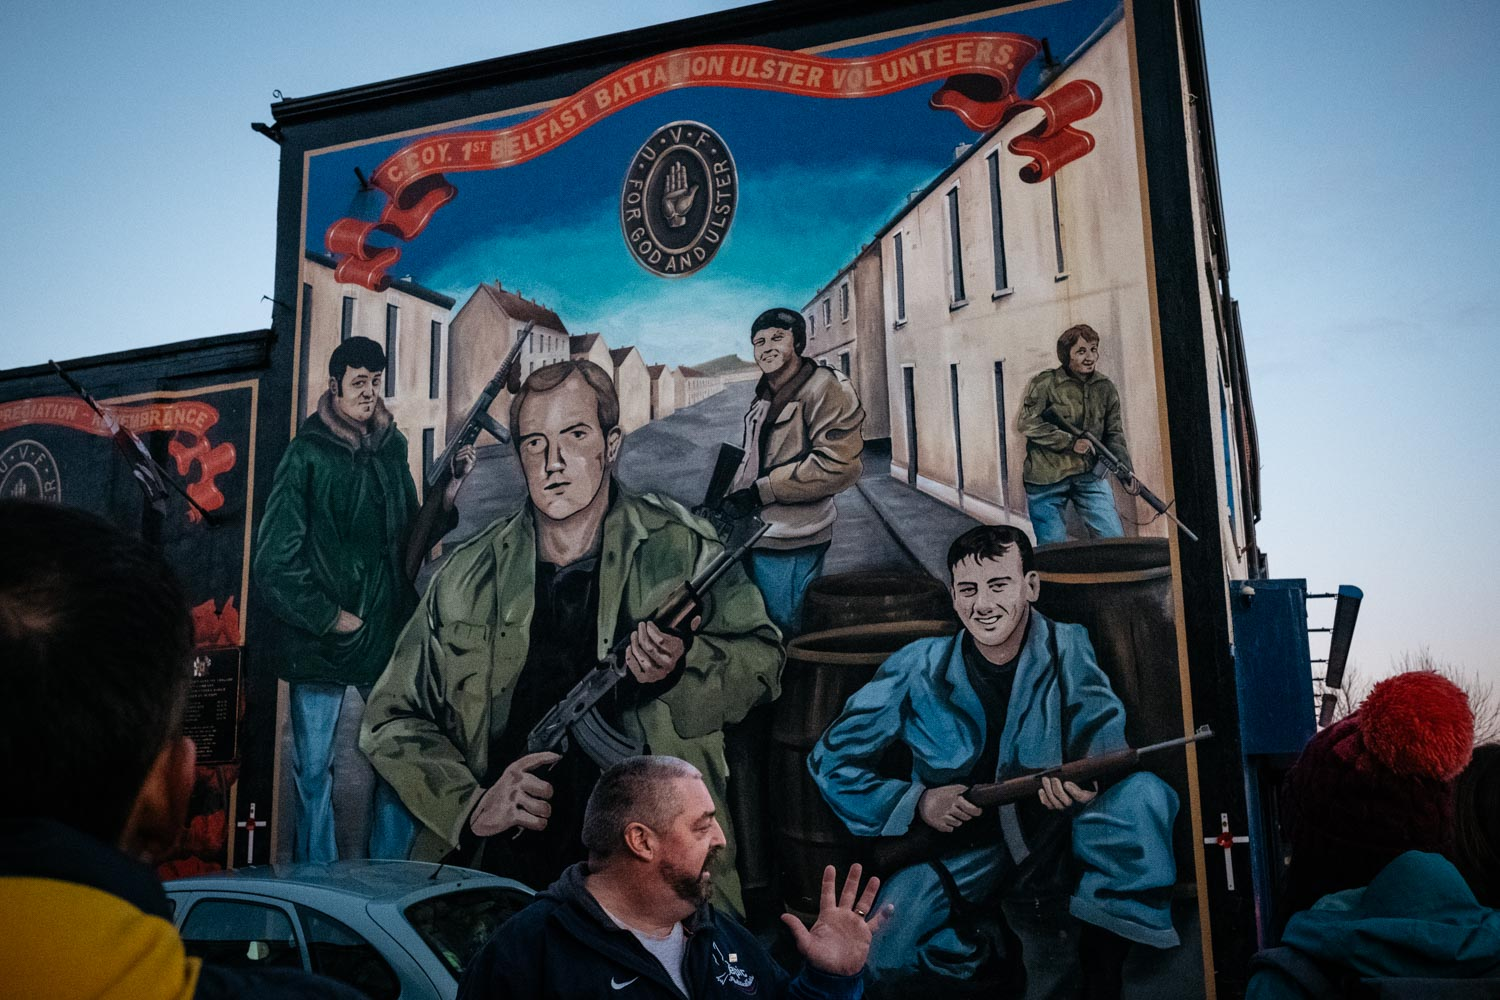 Mark, a former loyalist paramilitary man and former British soldier, and now tour guide with the Ex-Prisoners Interpretative Centre (EPIC), shows us a mural of the Ulster Volunteer Force (UVF) along Shankill Road.